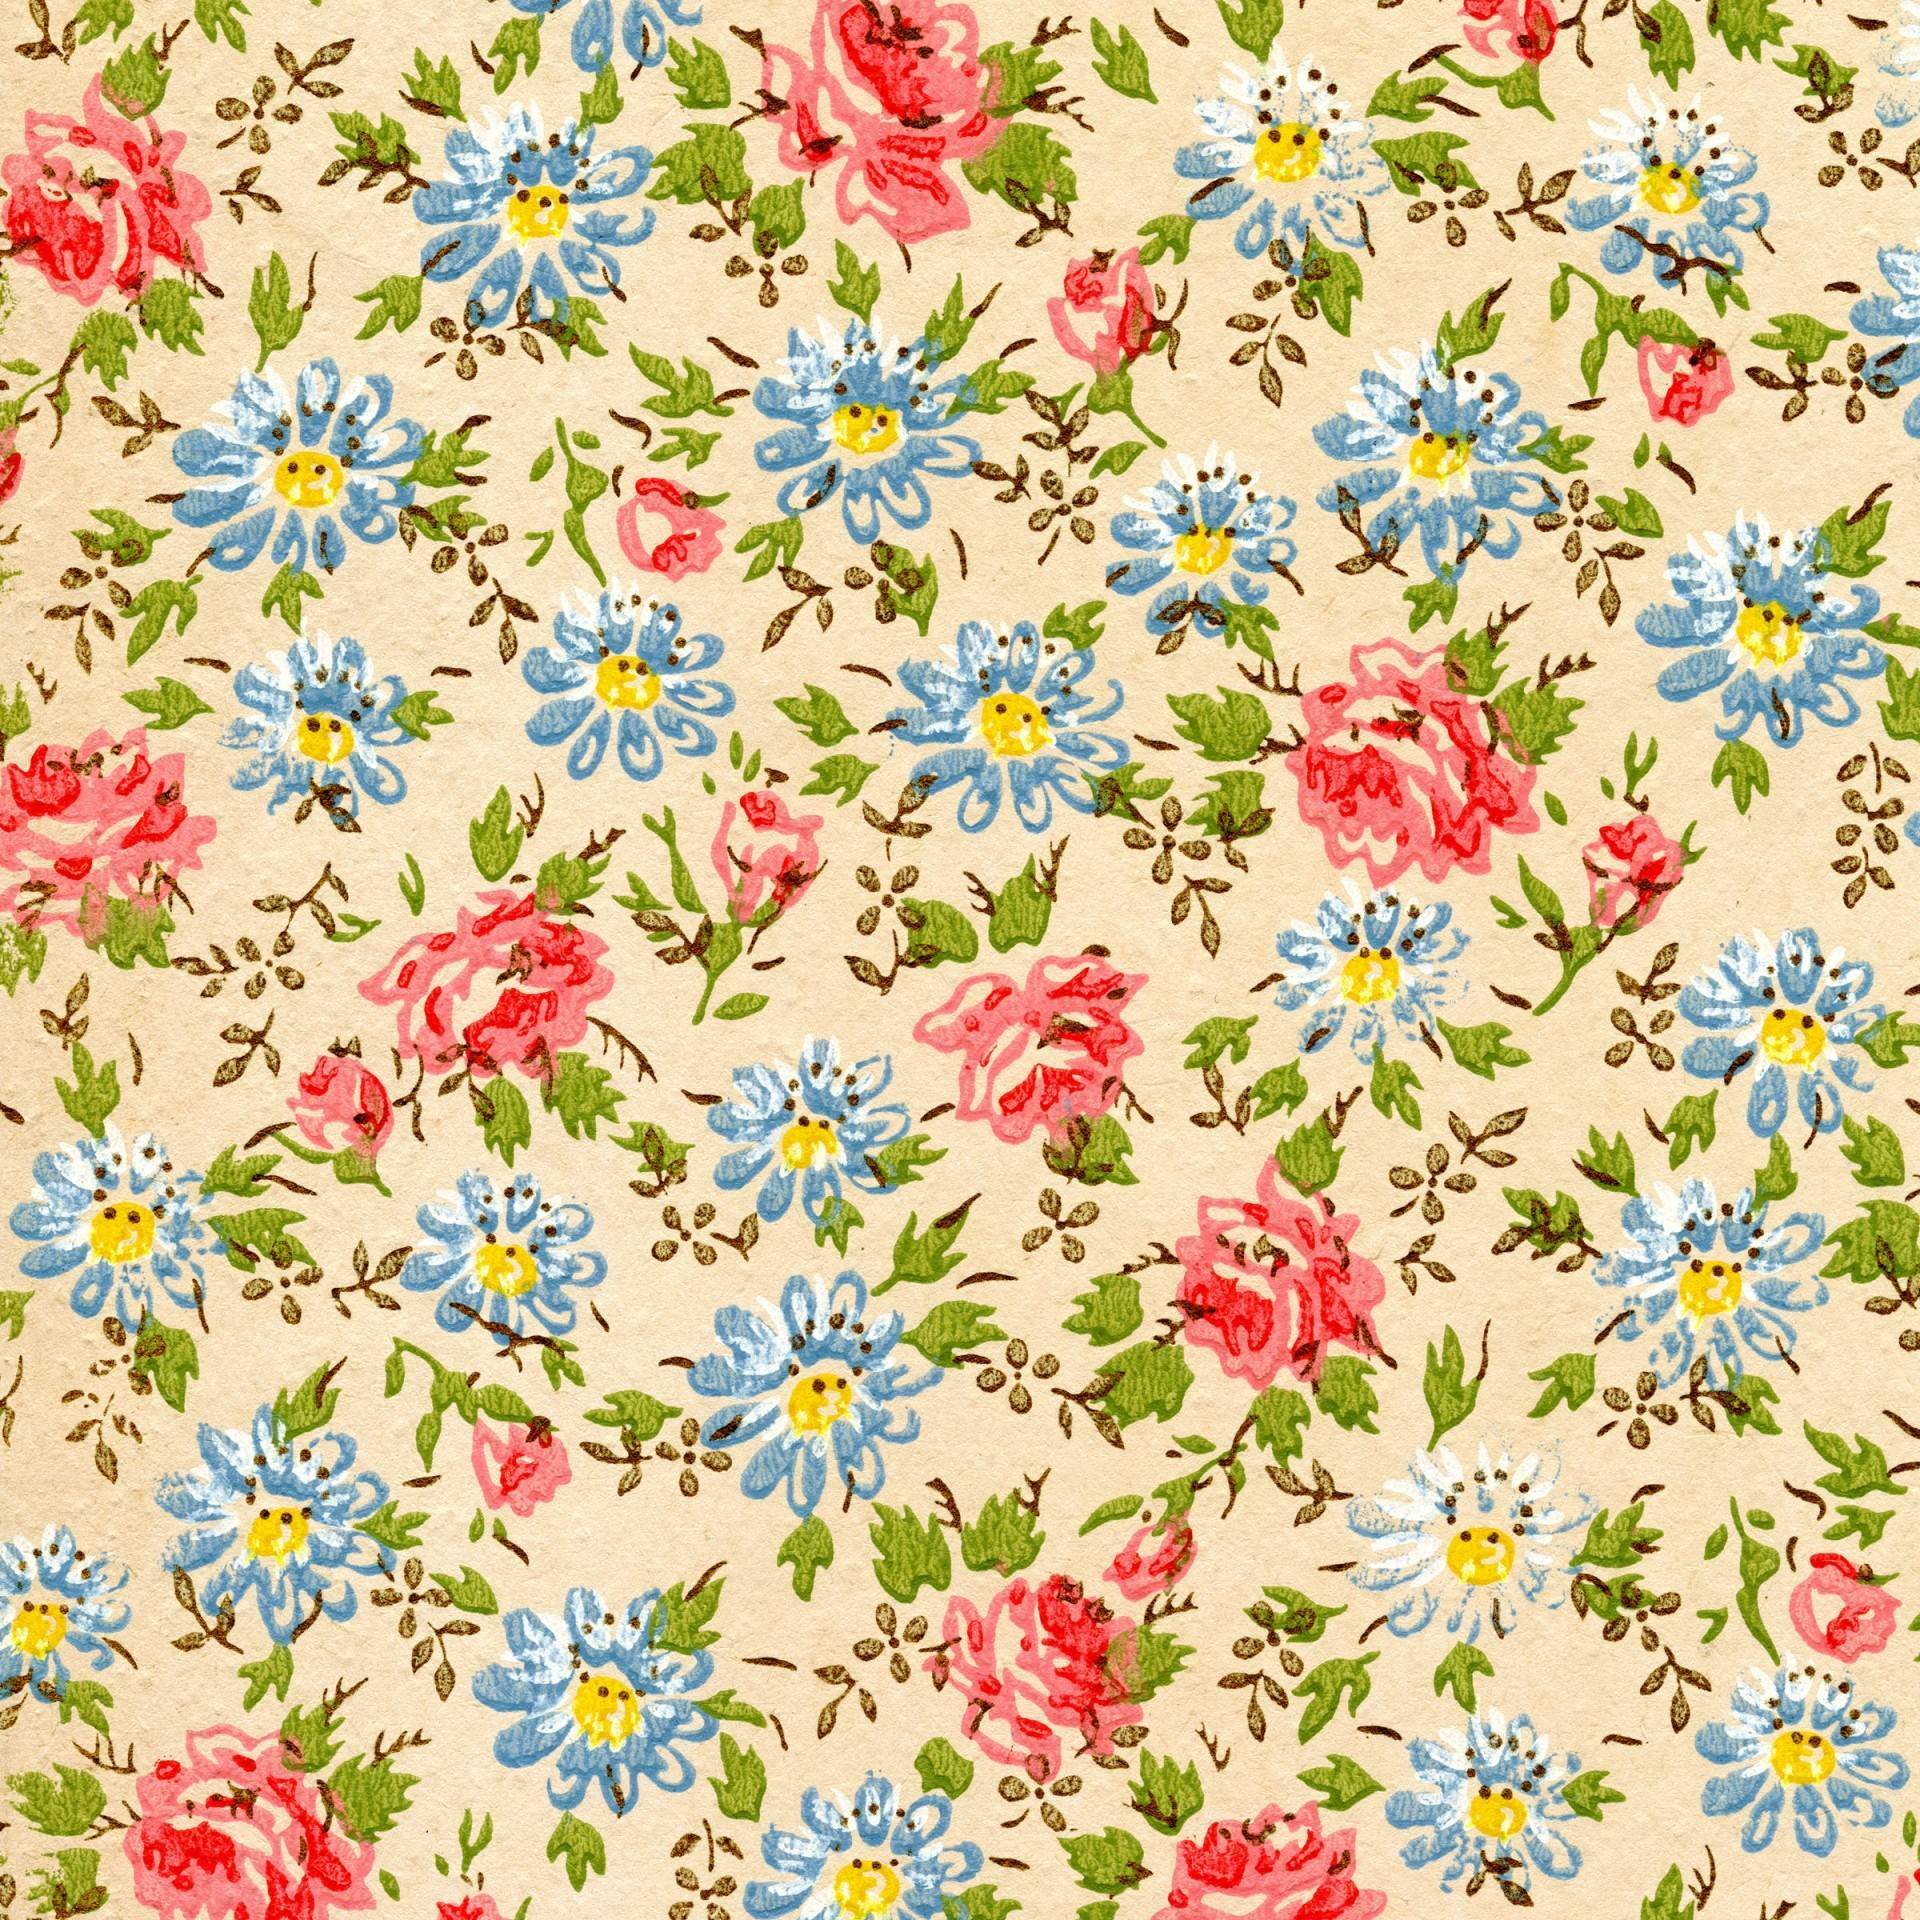 Vintage Flower Wallpaper For Iphone Wallpaper | FlowerHDWallpaper